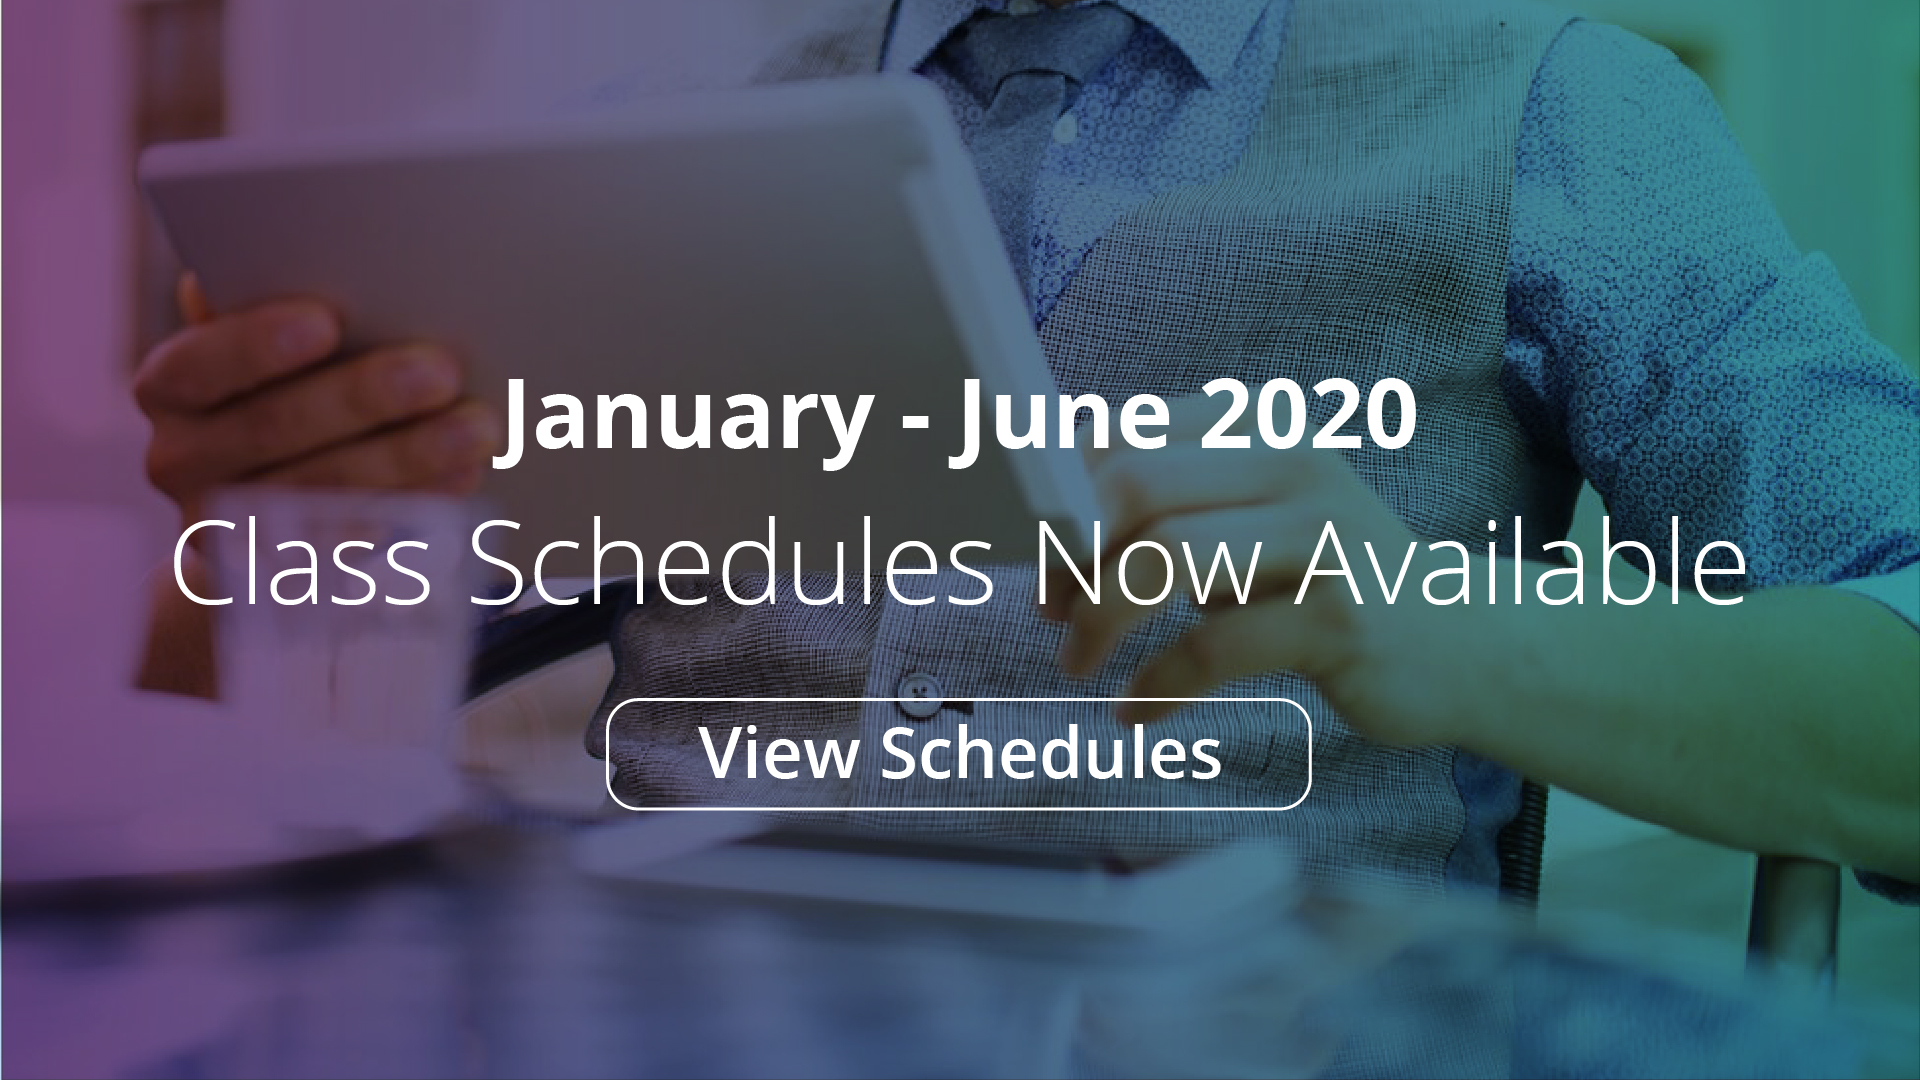 January - June 2020 Class Schedules Now Available